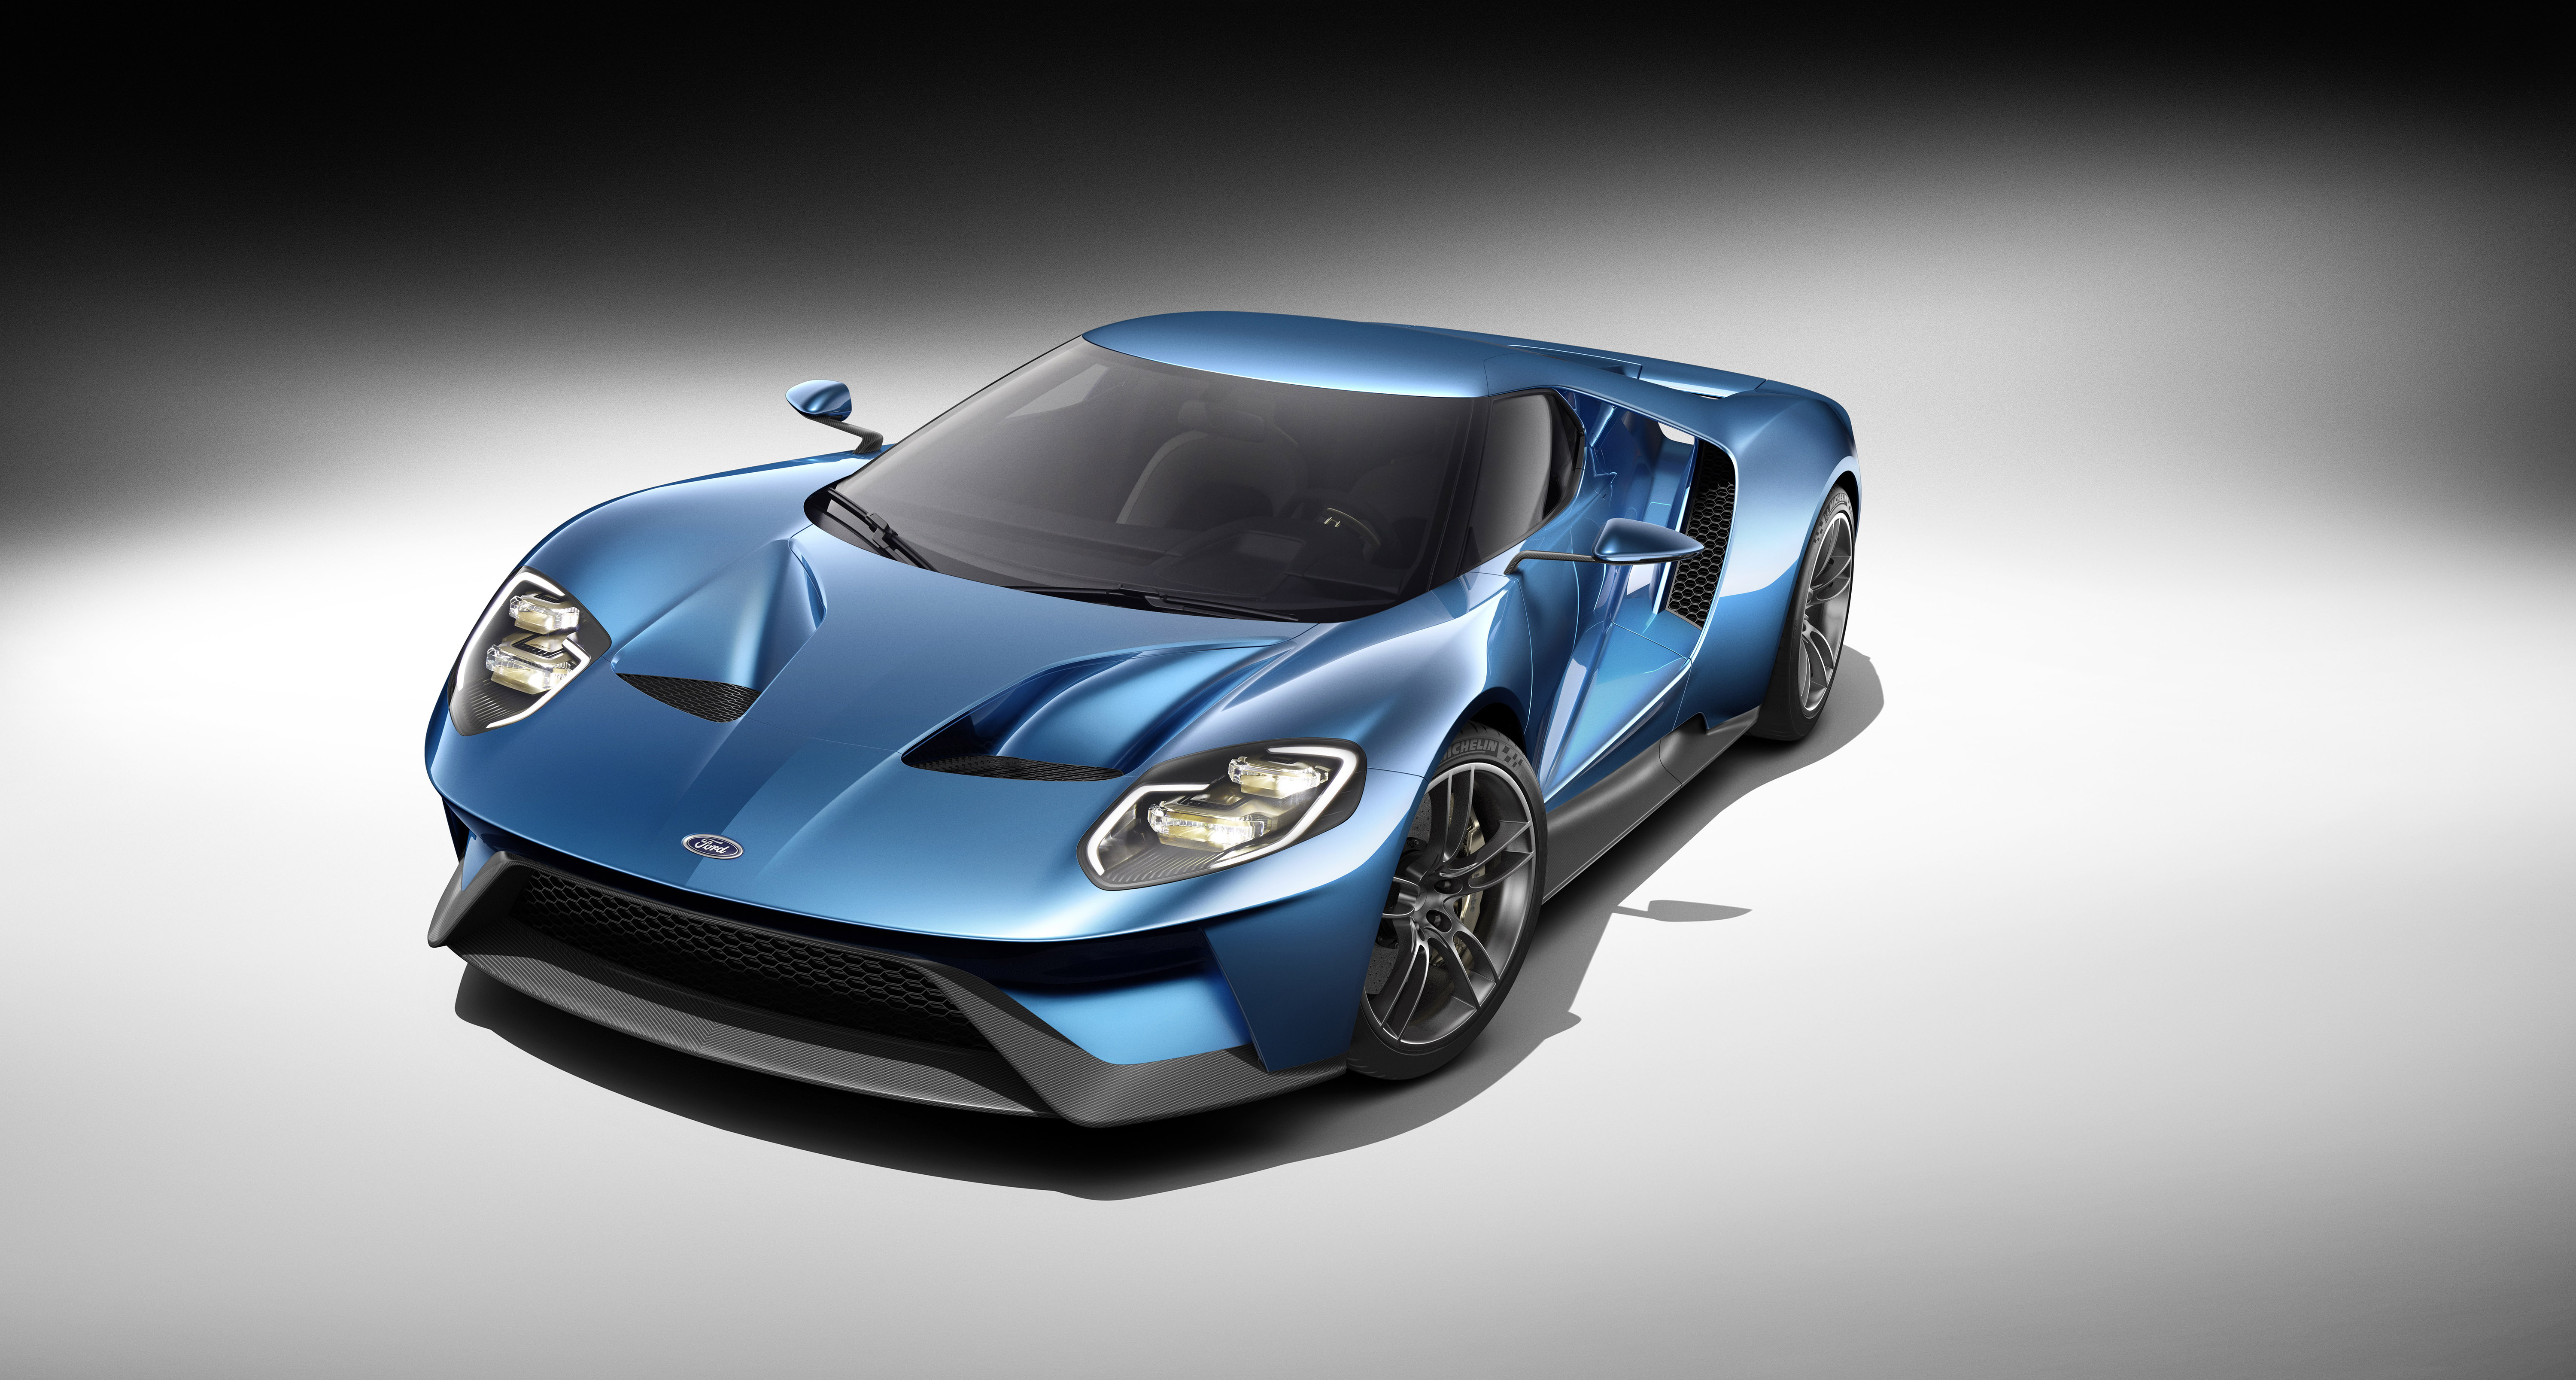 Ford Redefines Innovation In Aerodynamics Ecoboost And Light Weighting With All New Ford Gt Carbon Fiber Supercar Business Wire